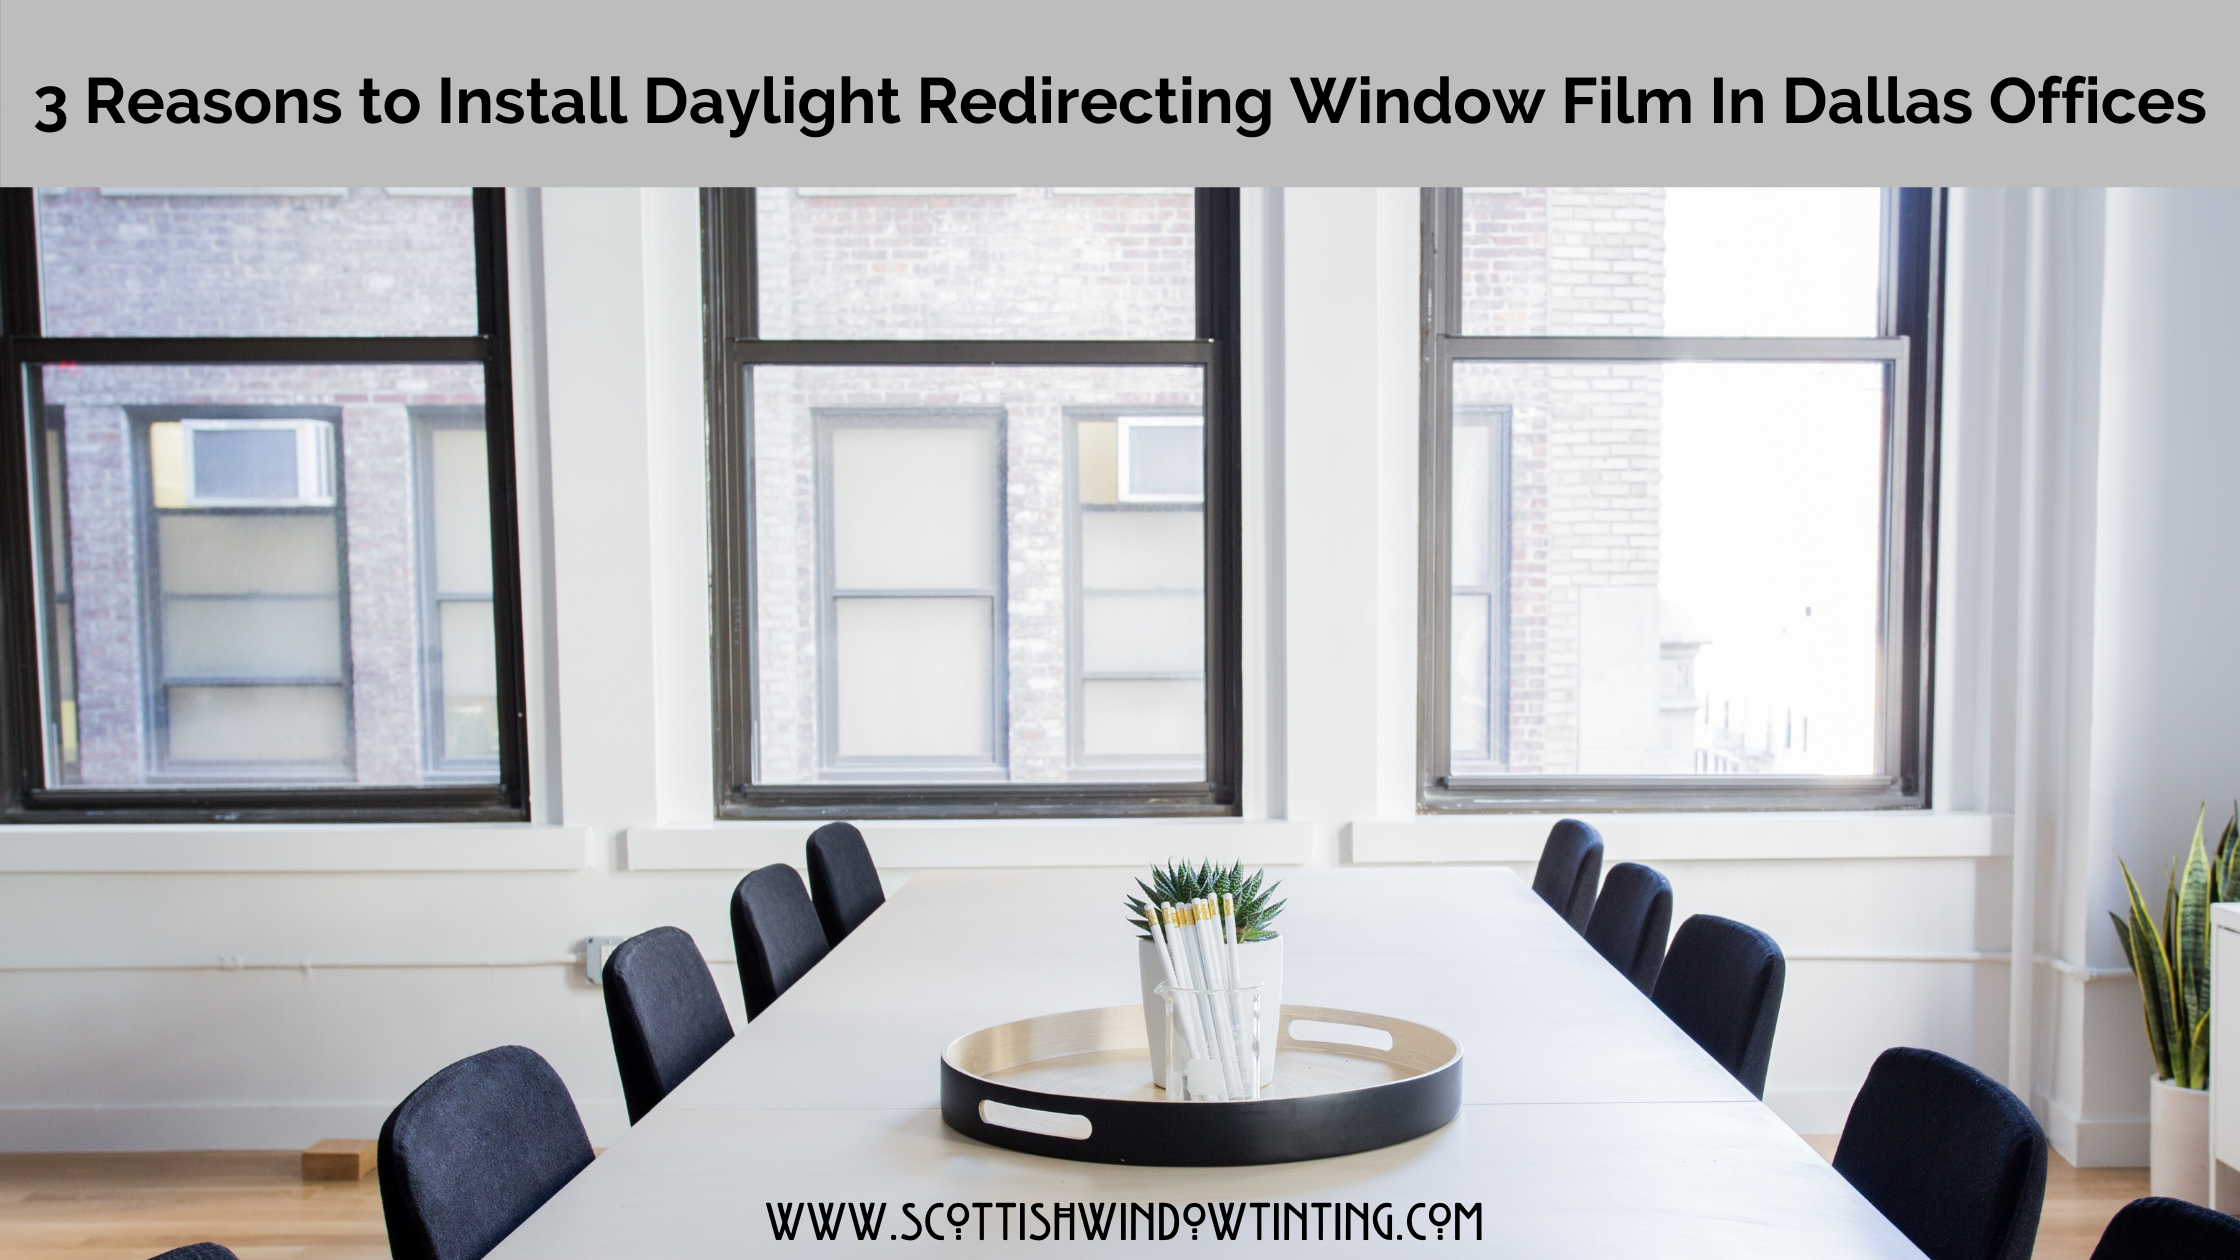 3 Reasons to Install Daylight Redirecting Window Film In Dallas Offices